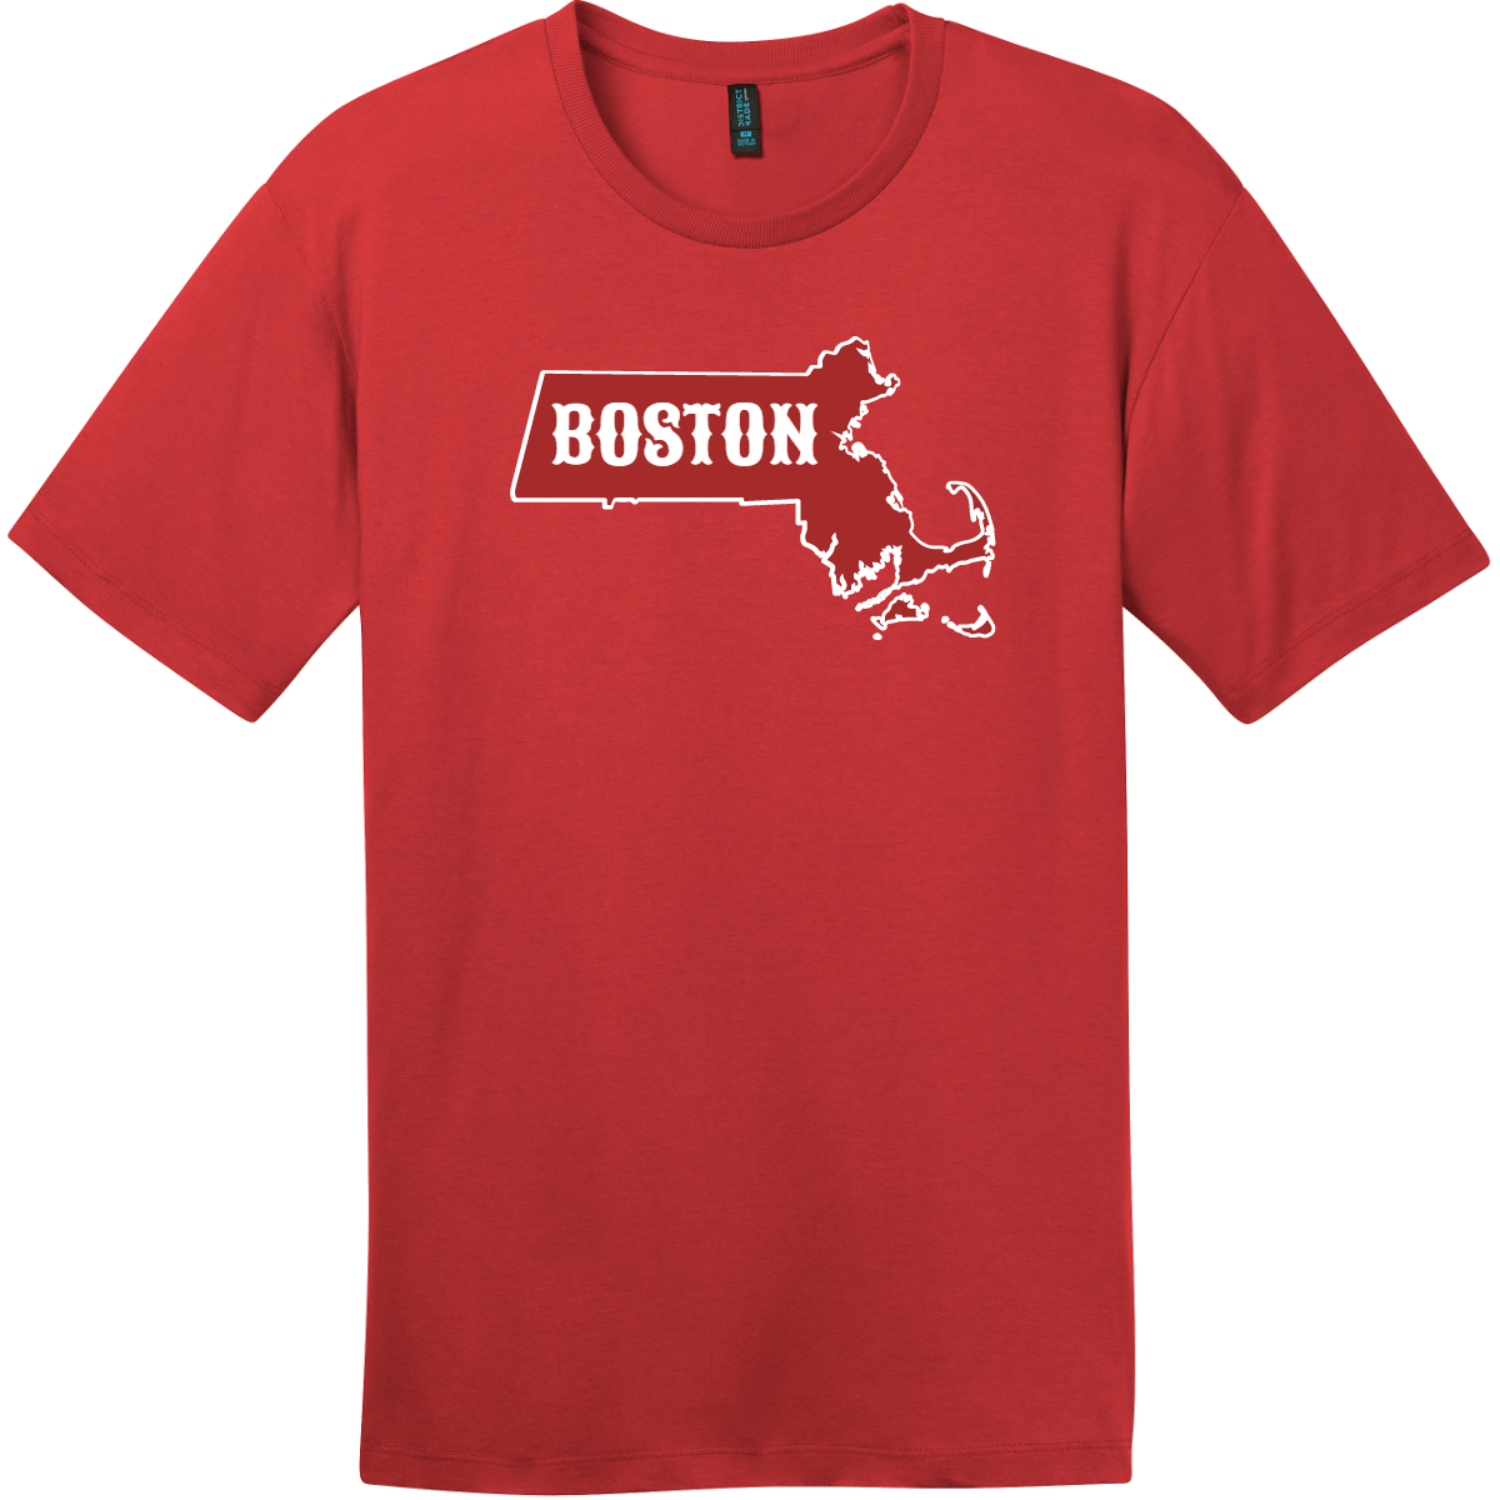 Boston Massachusetts State T-Shirt Classic Red District Perfect Weight Tee DT104